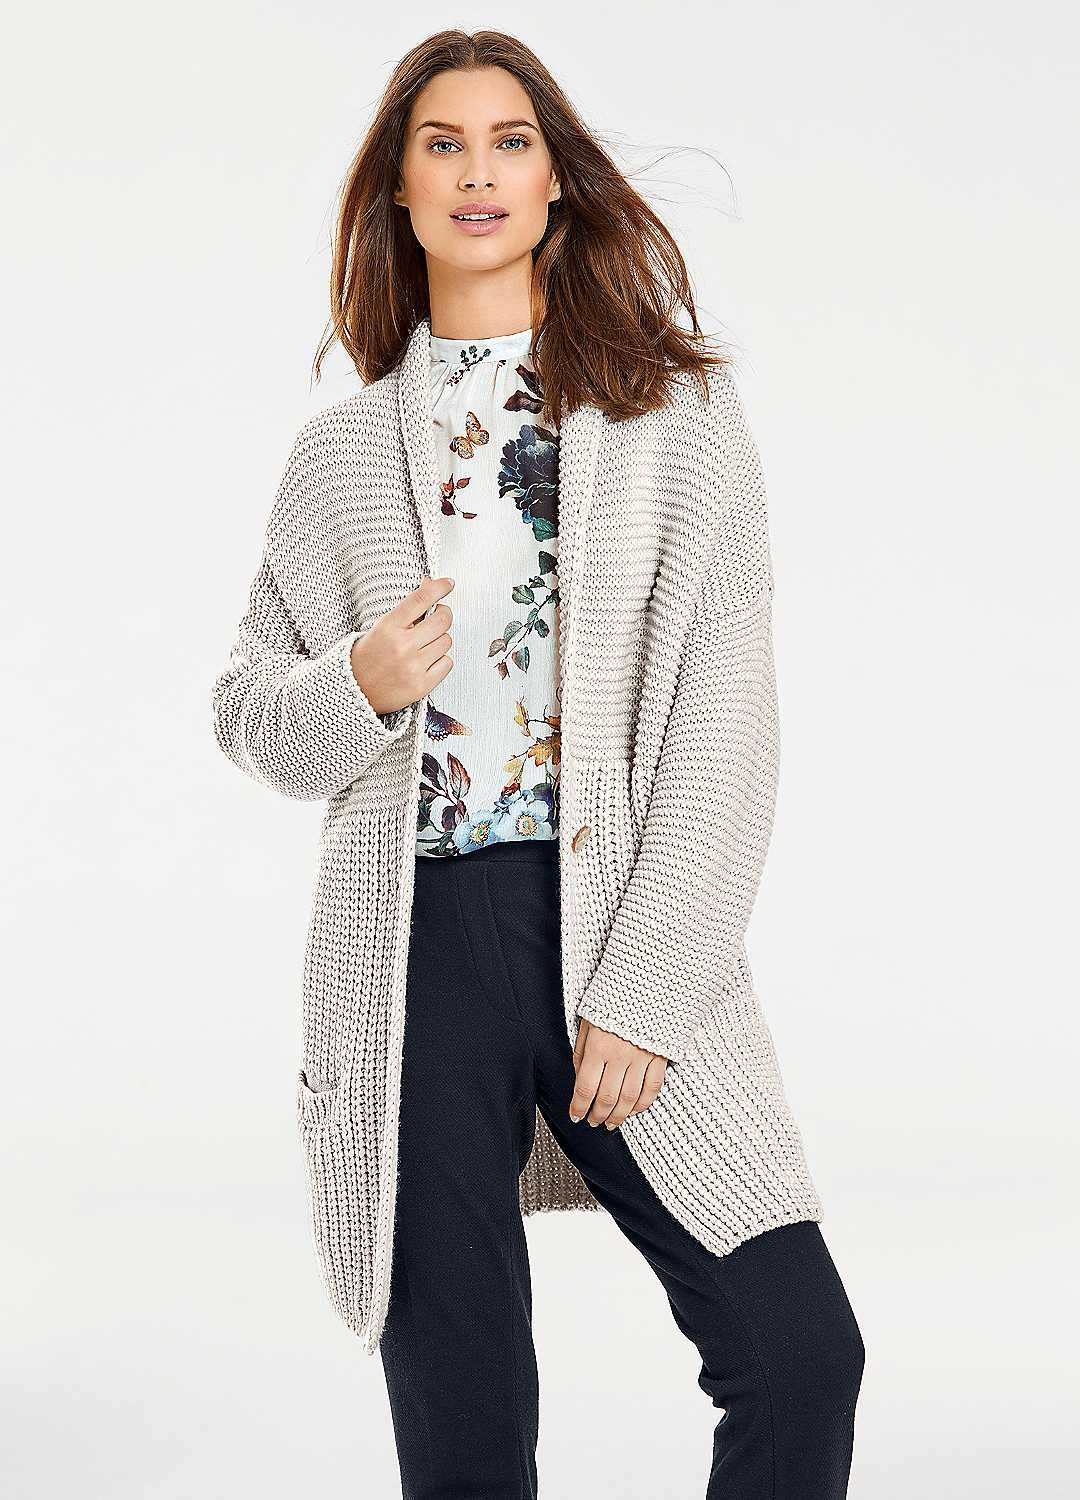 34e959a23d592e Best Connections Oversized Cardigan Heine, Oversized Cardigan, Winter  Trends, Boden, Trends 2018